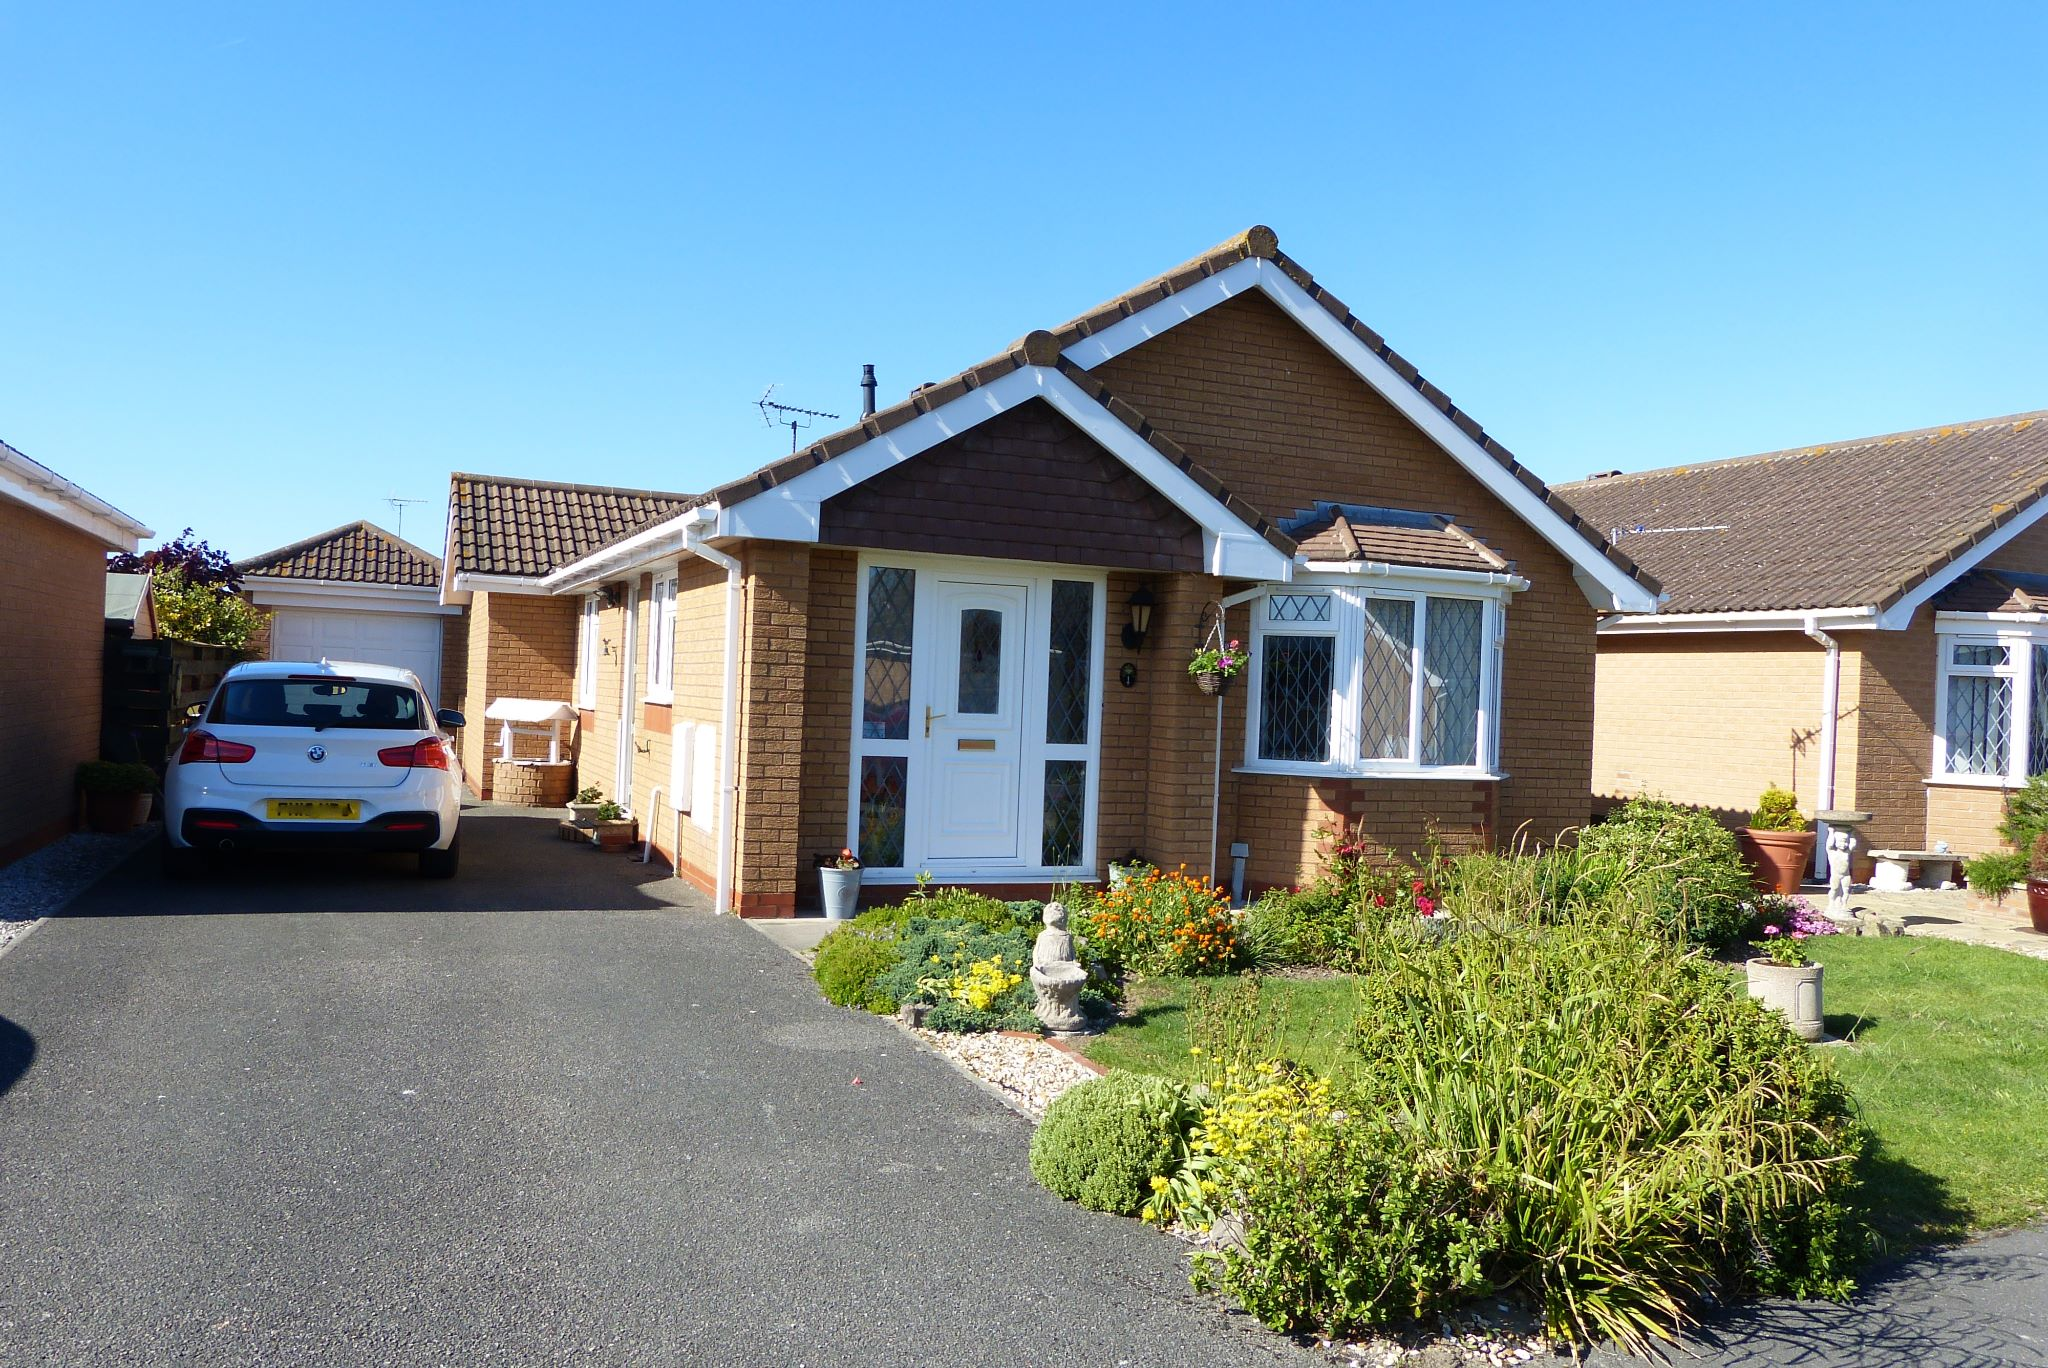 2 bedroom detached bungalow SSTC in Abergele - Photograph 1